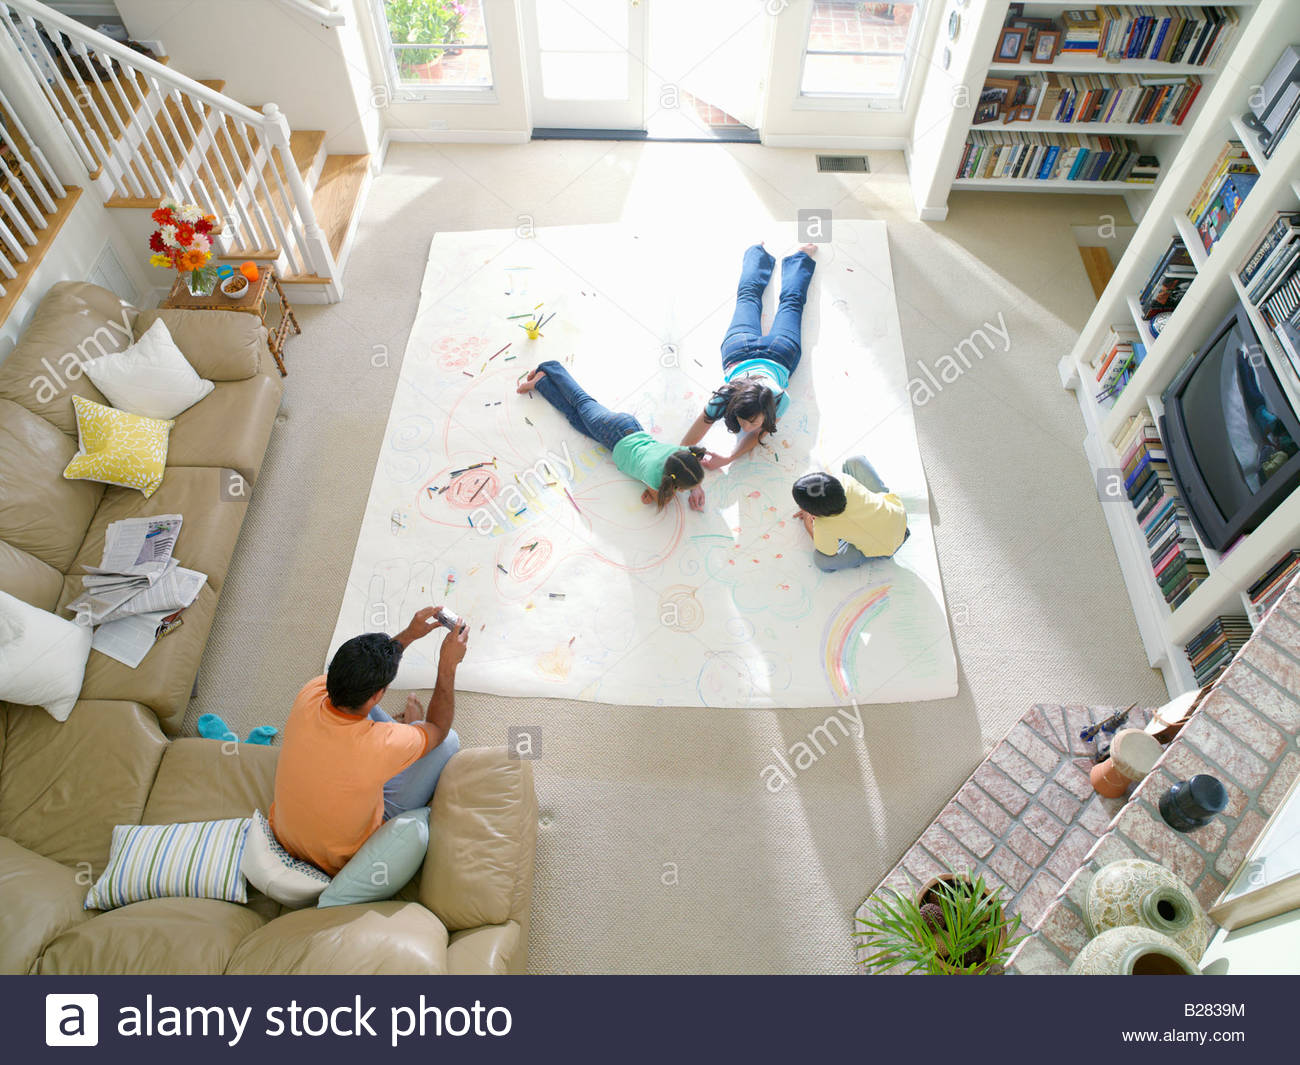 Family of four in living room, mother, son and daughter (6-10) drawing on large piece of paper on floor, elevated - Stock Image